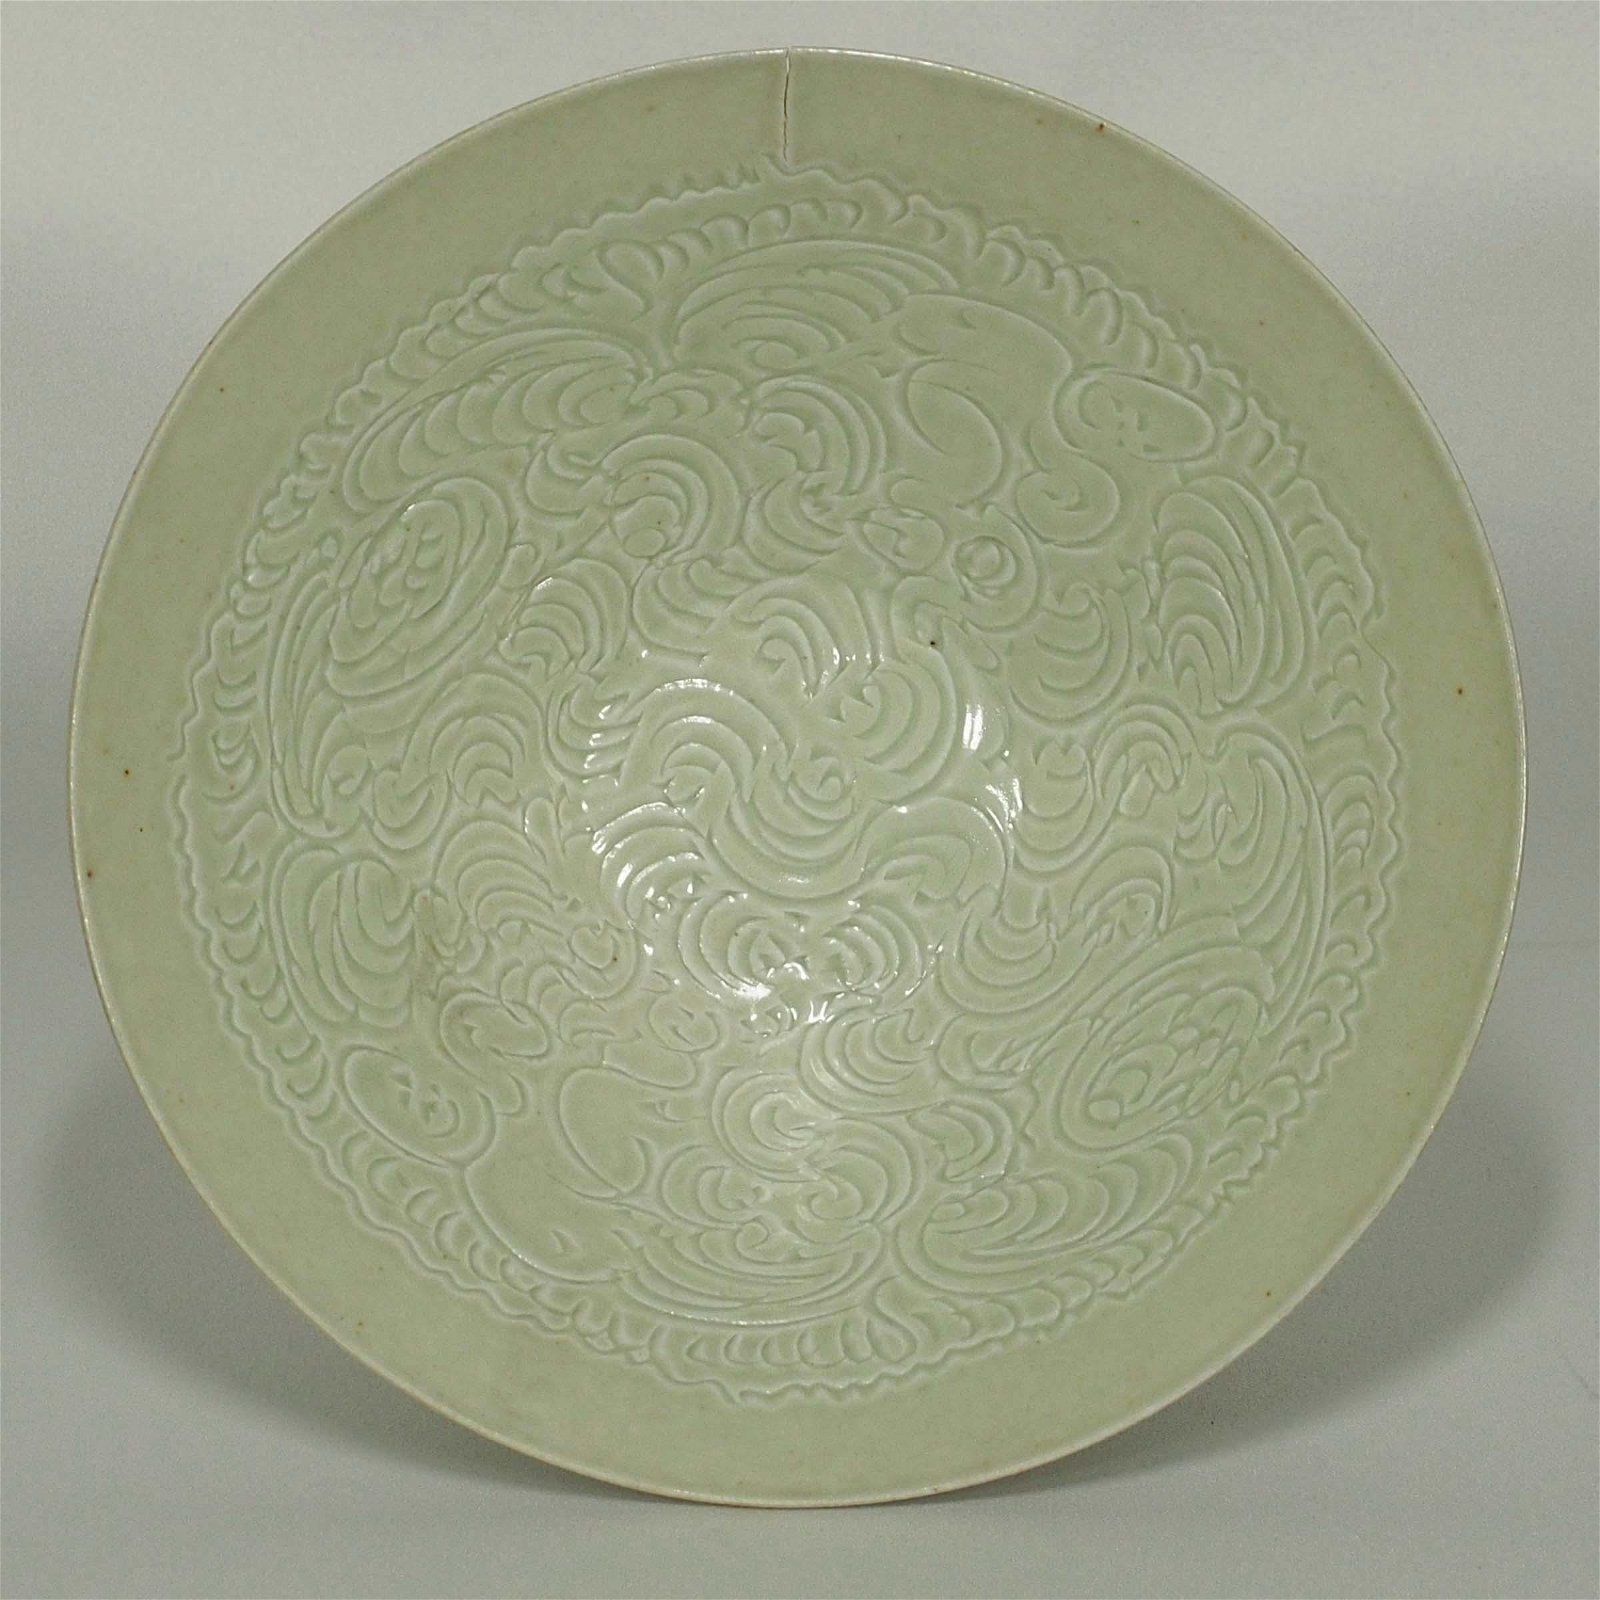 Qingbai Bowl with Incised Motif, Song